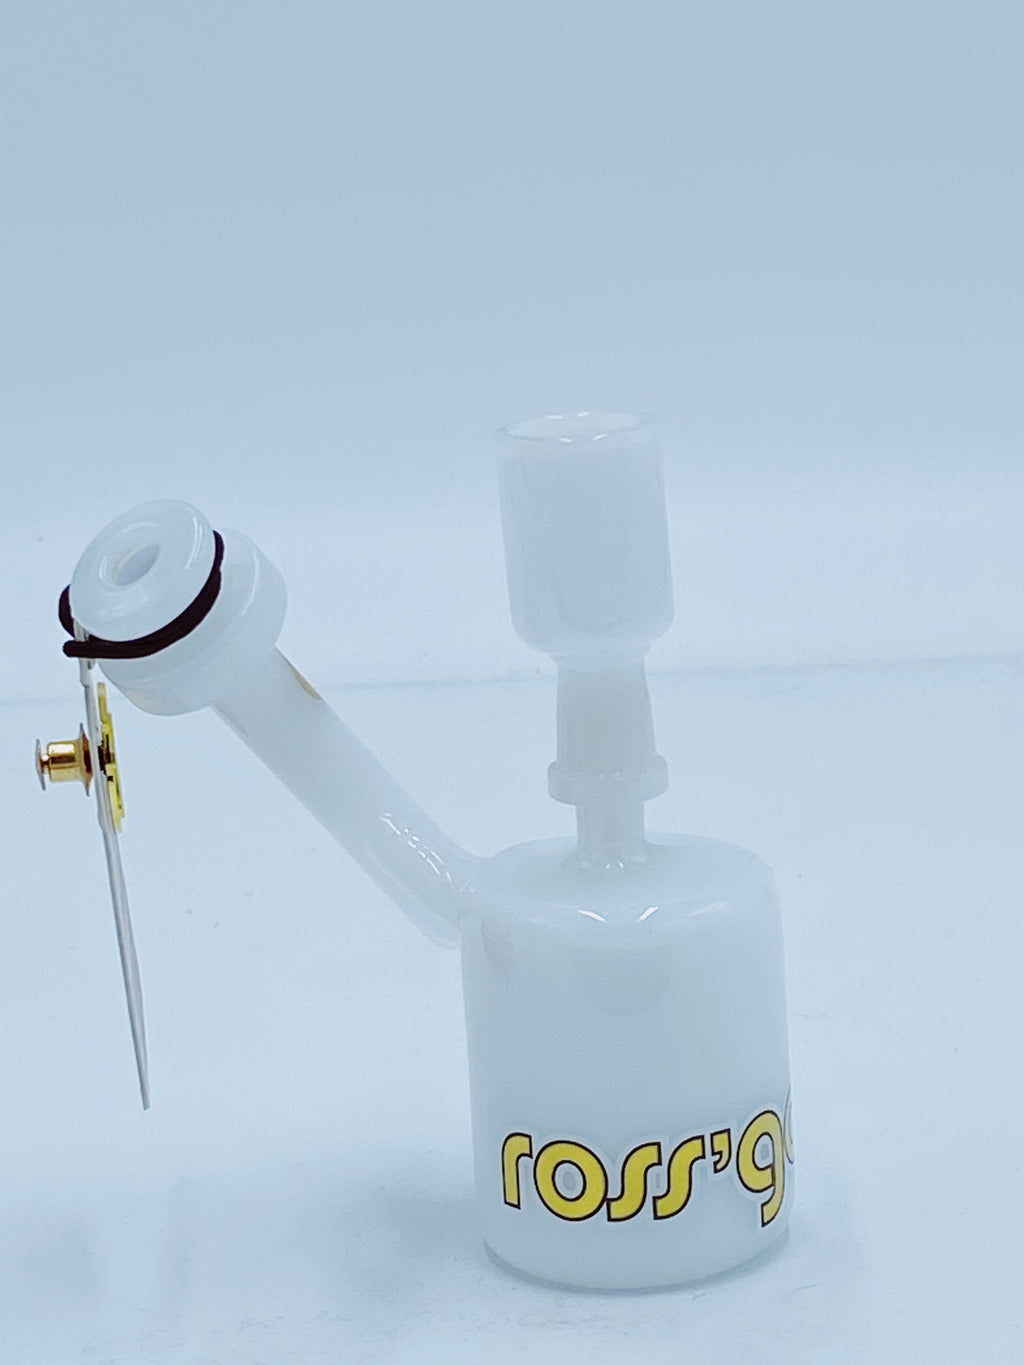 ROSS GOLD WHITE SIDECAR RIG - Smoke Country - Land of the artistic glass blown bongs